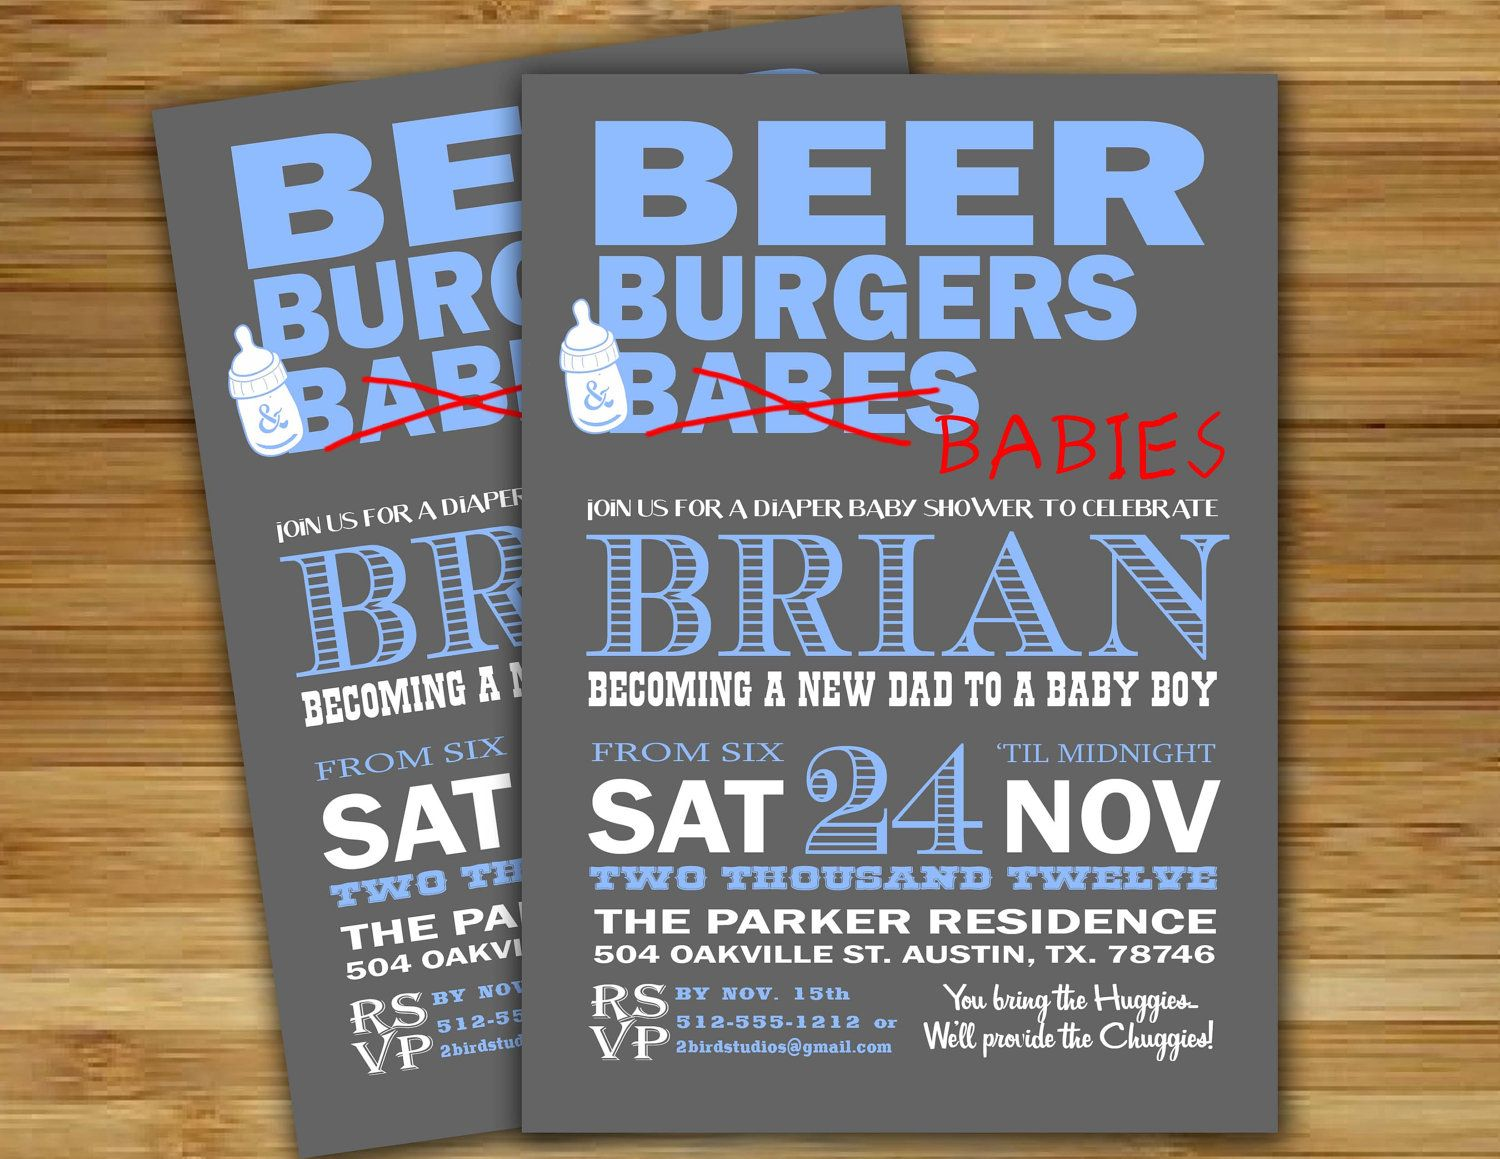 diaper shower invitation for dad to be beer burgers and babies printable invitation diy baby shower